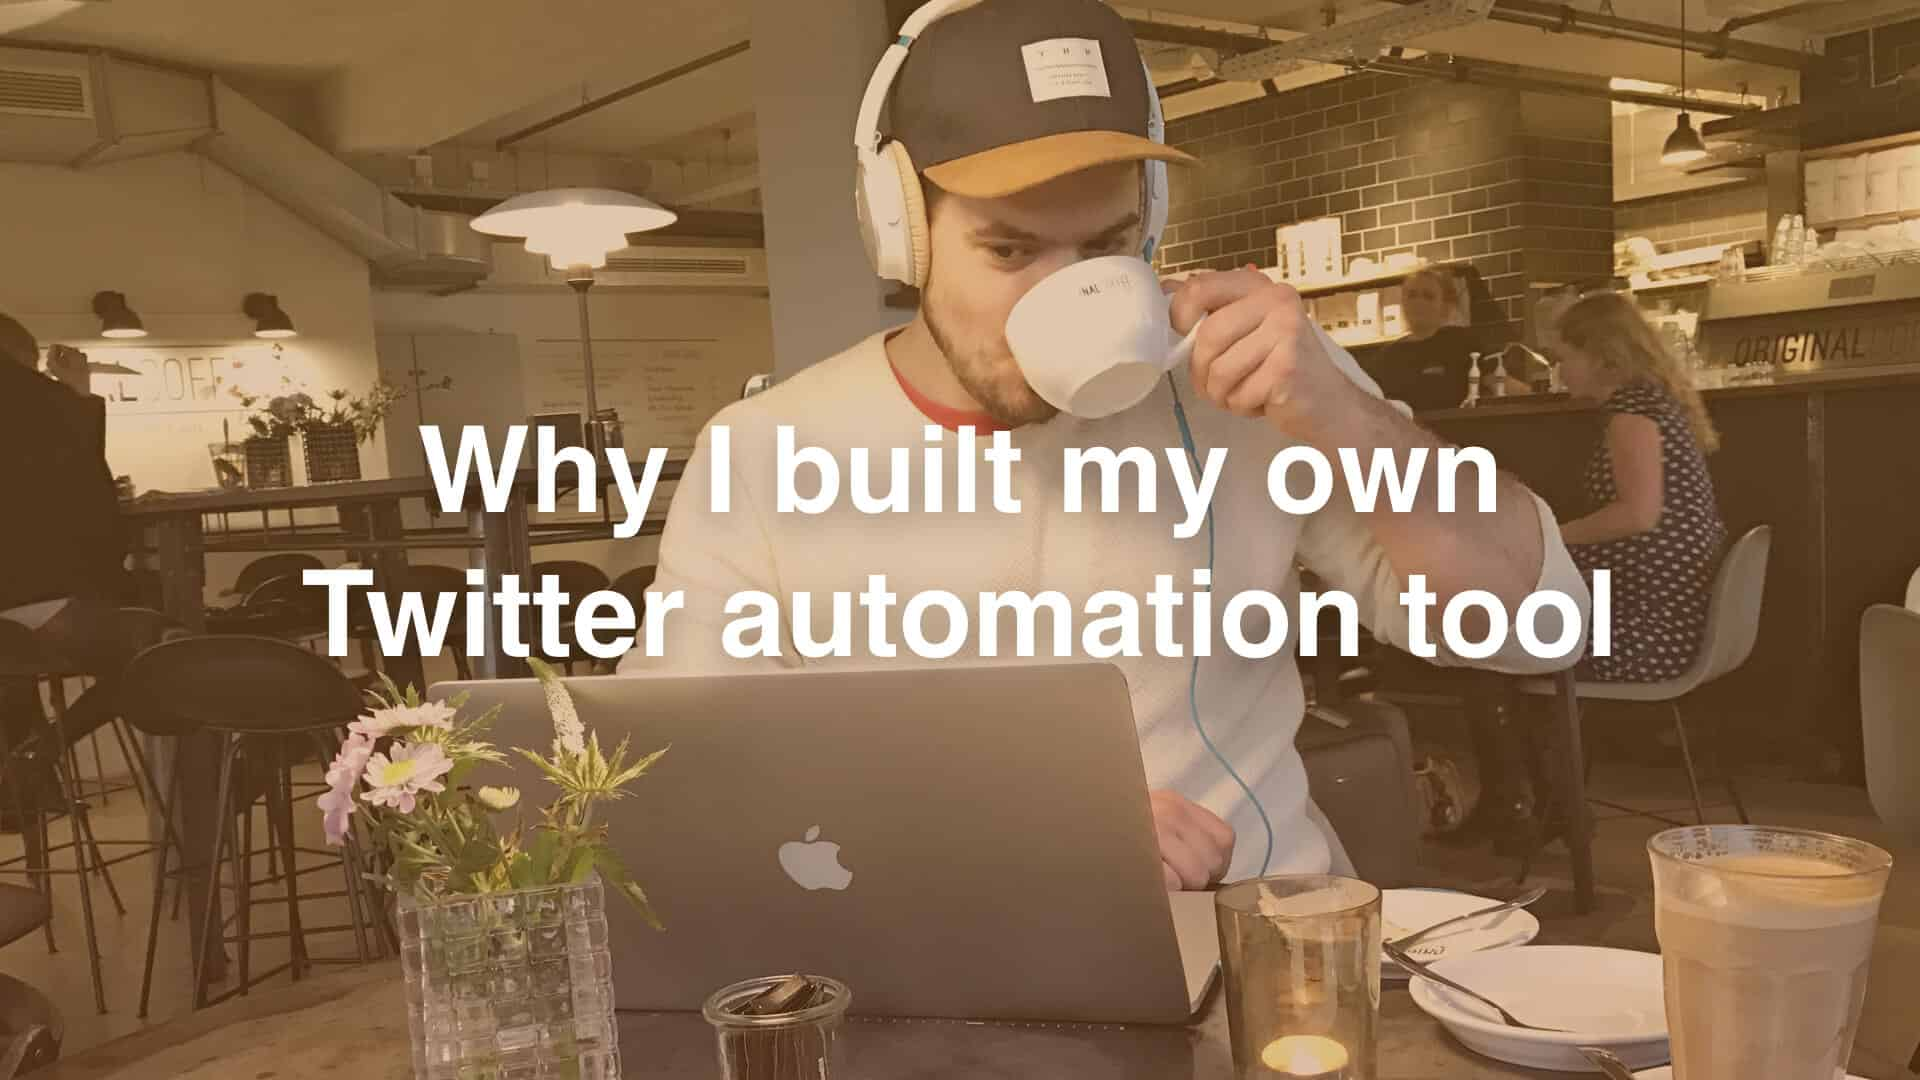 Why I built my own Twitter automation tool